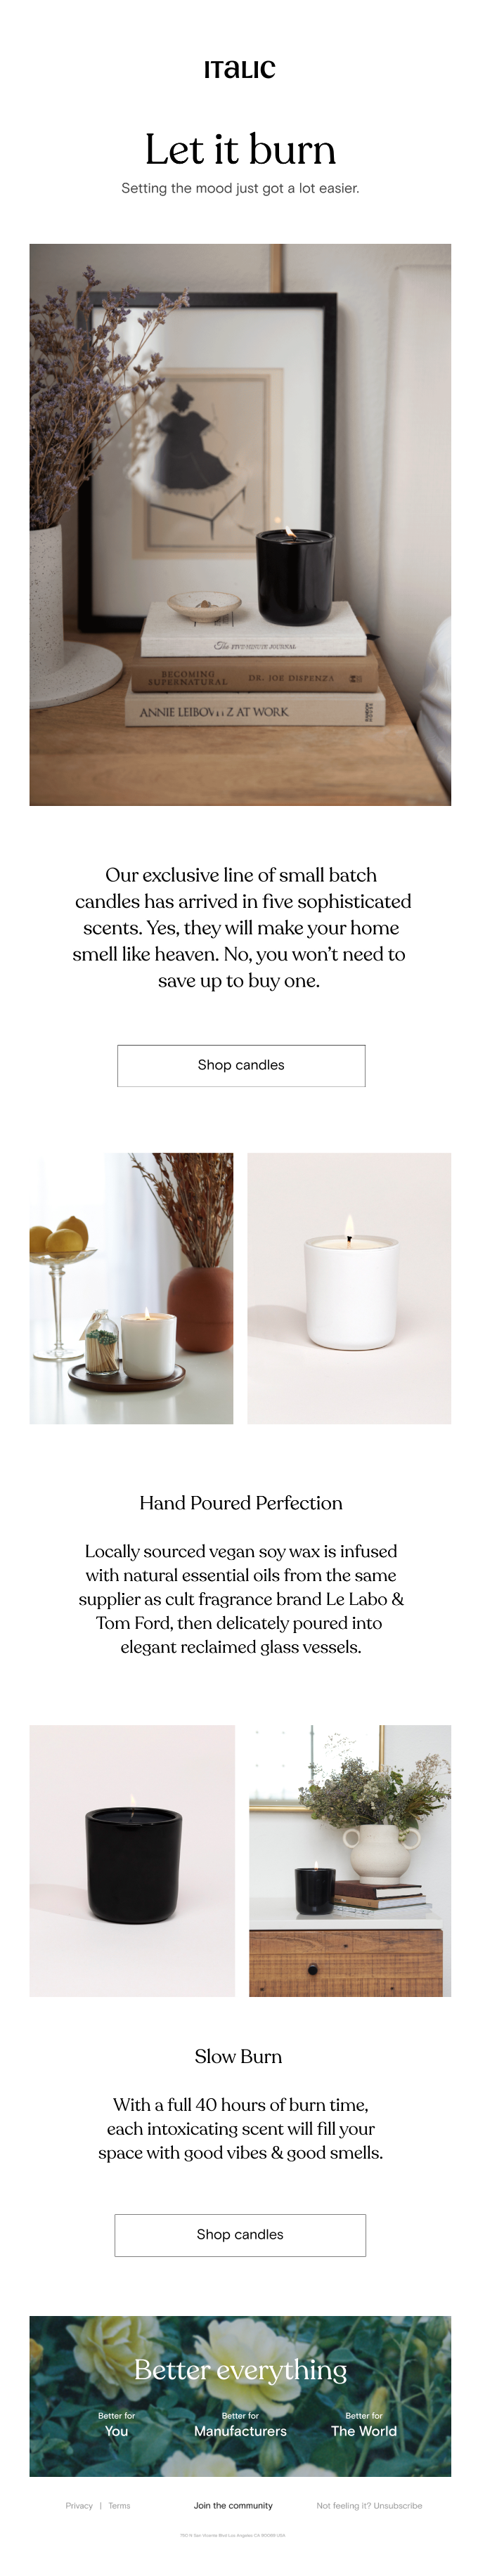 PSA: Italic Candles are officially here